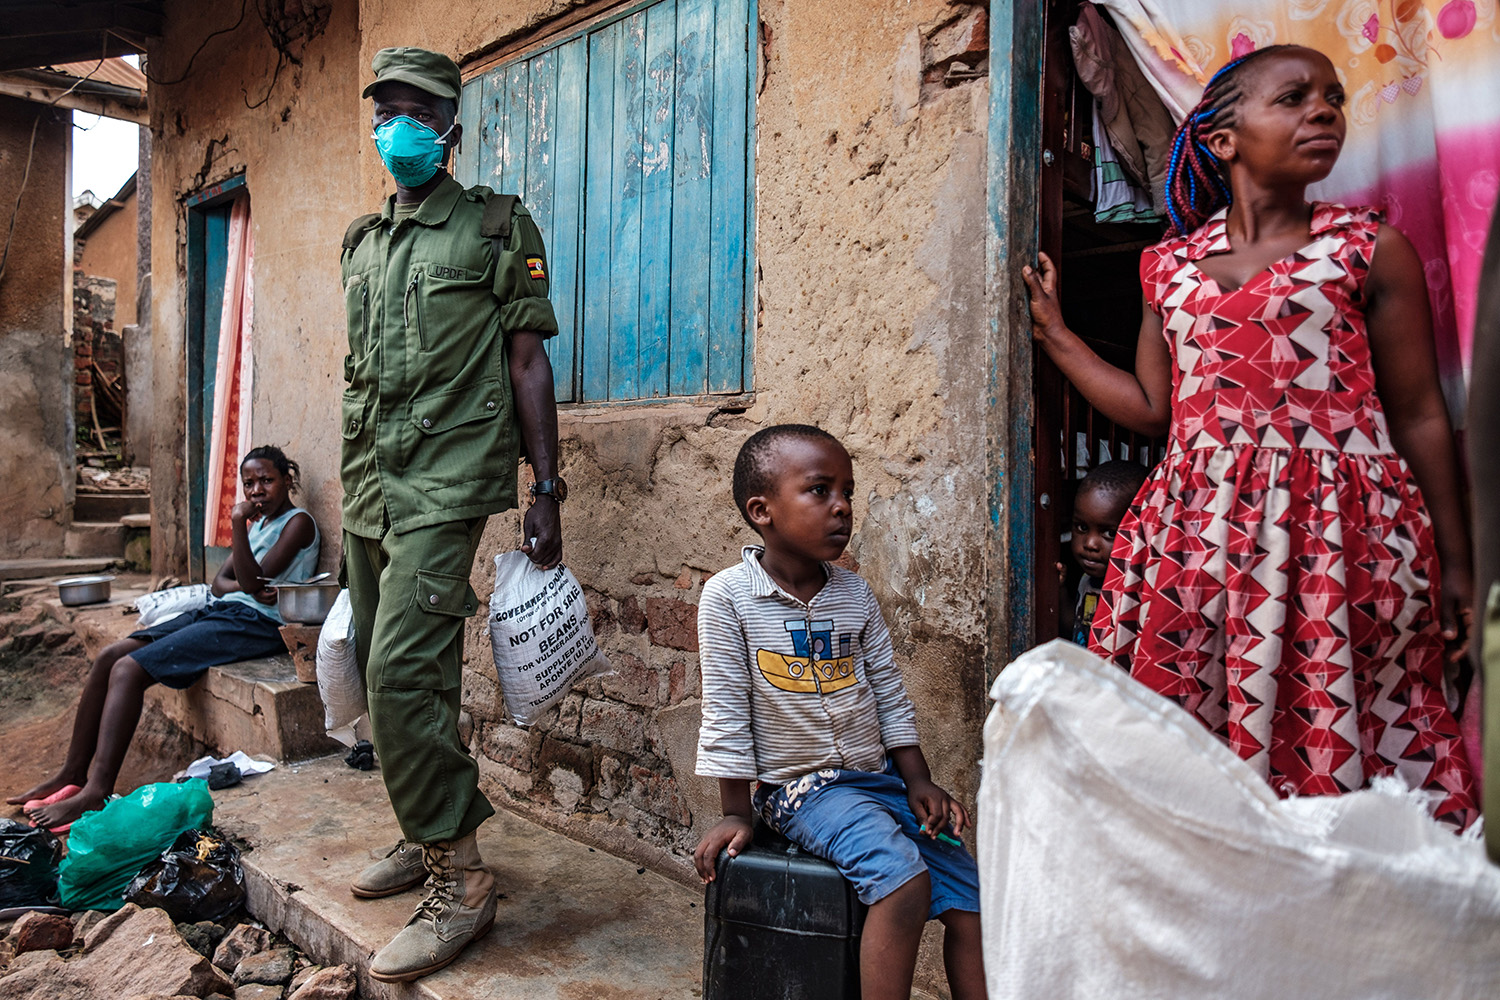 Members of the Local Defense Unit paramilitary force in Kampala, Uganda, deliver flour and beans April 4, the first day of food distribution for people who have been affected by the coronavirus lockdown. SUMY SADURNI/AFP via Getty Images